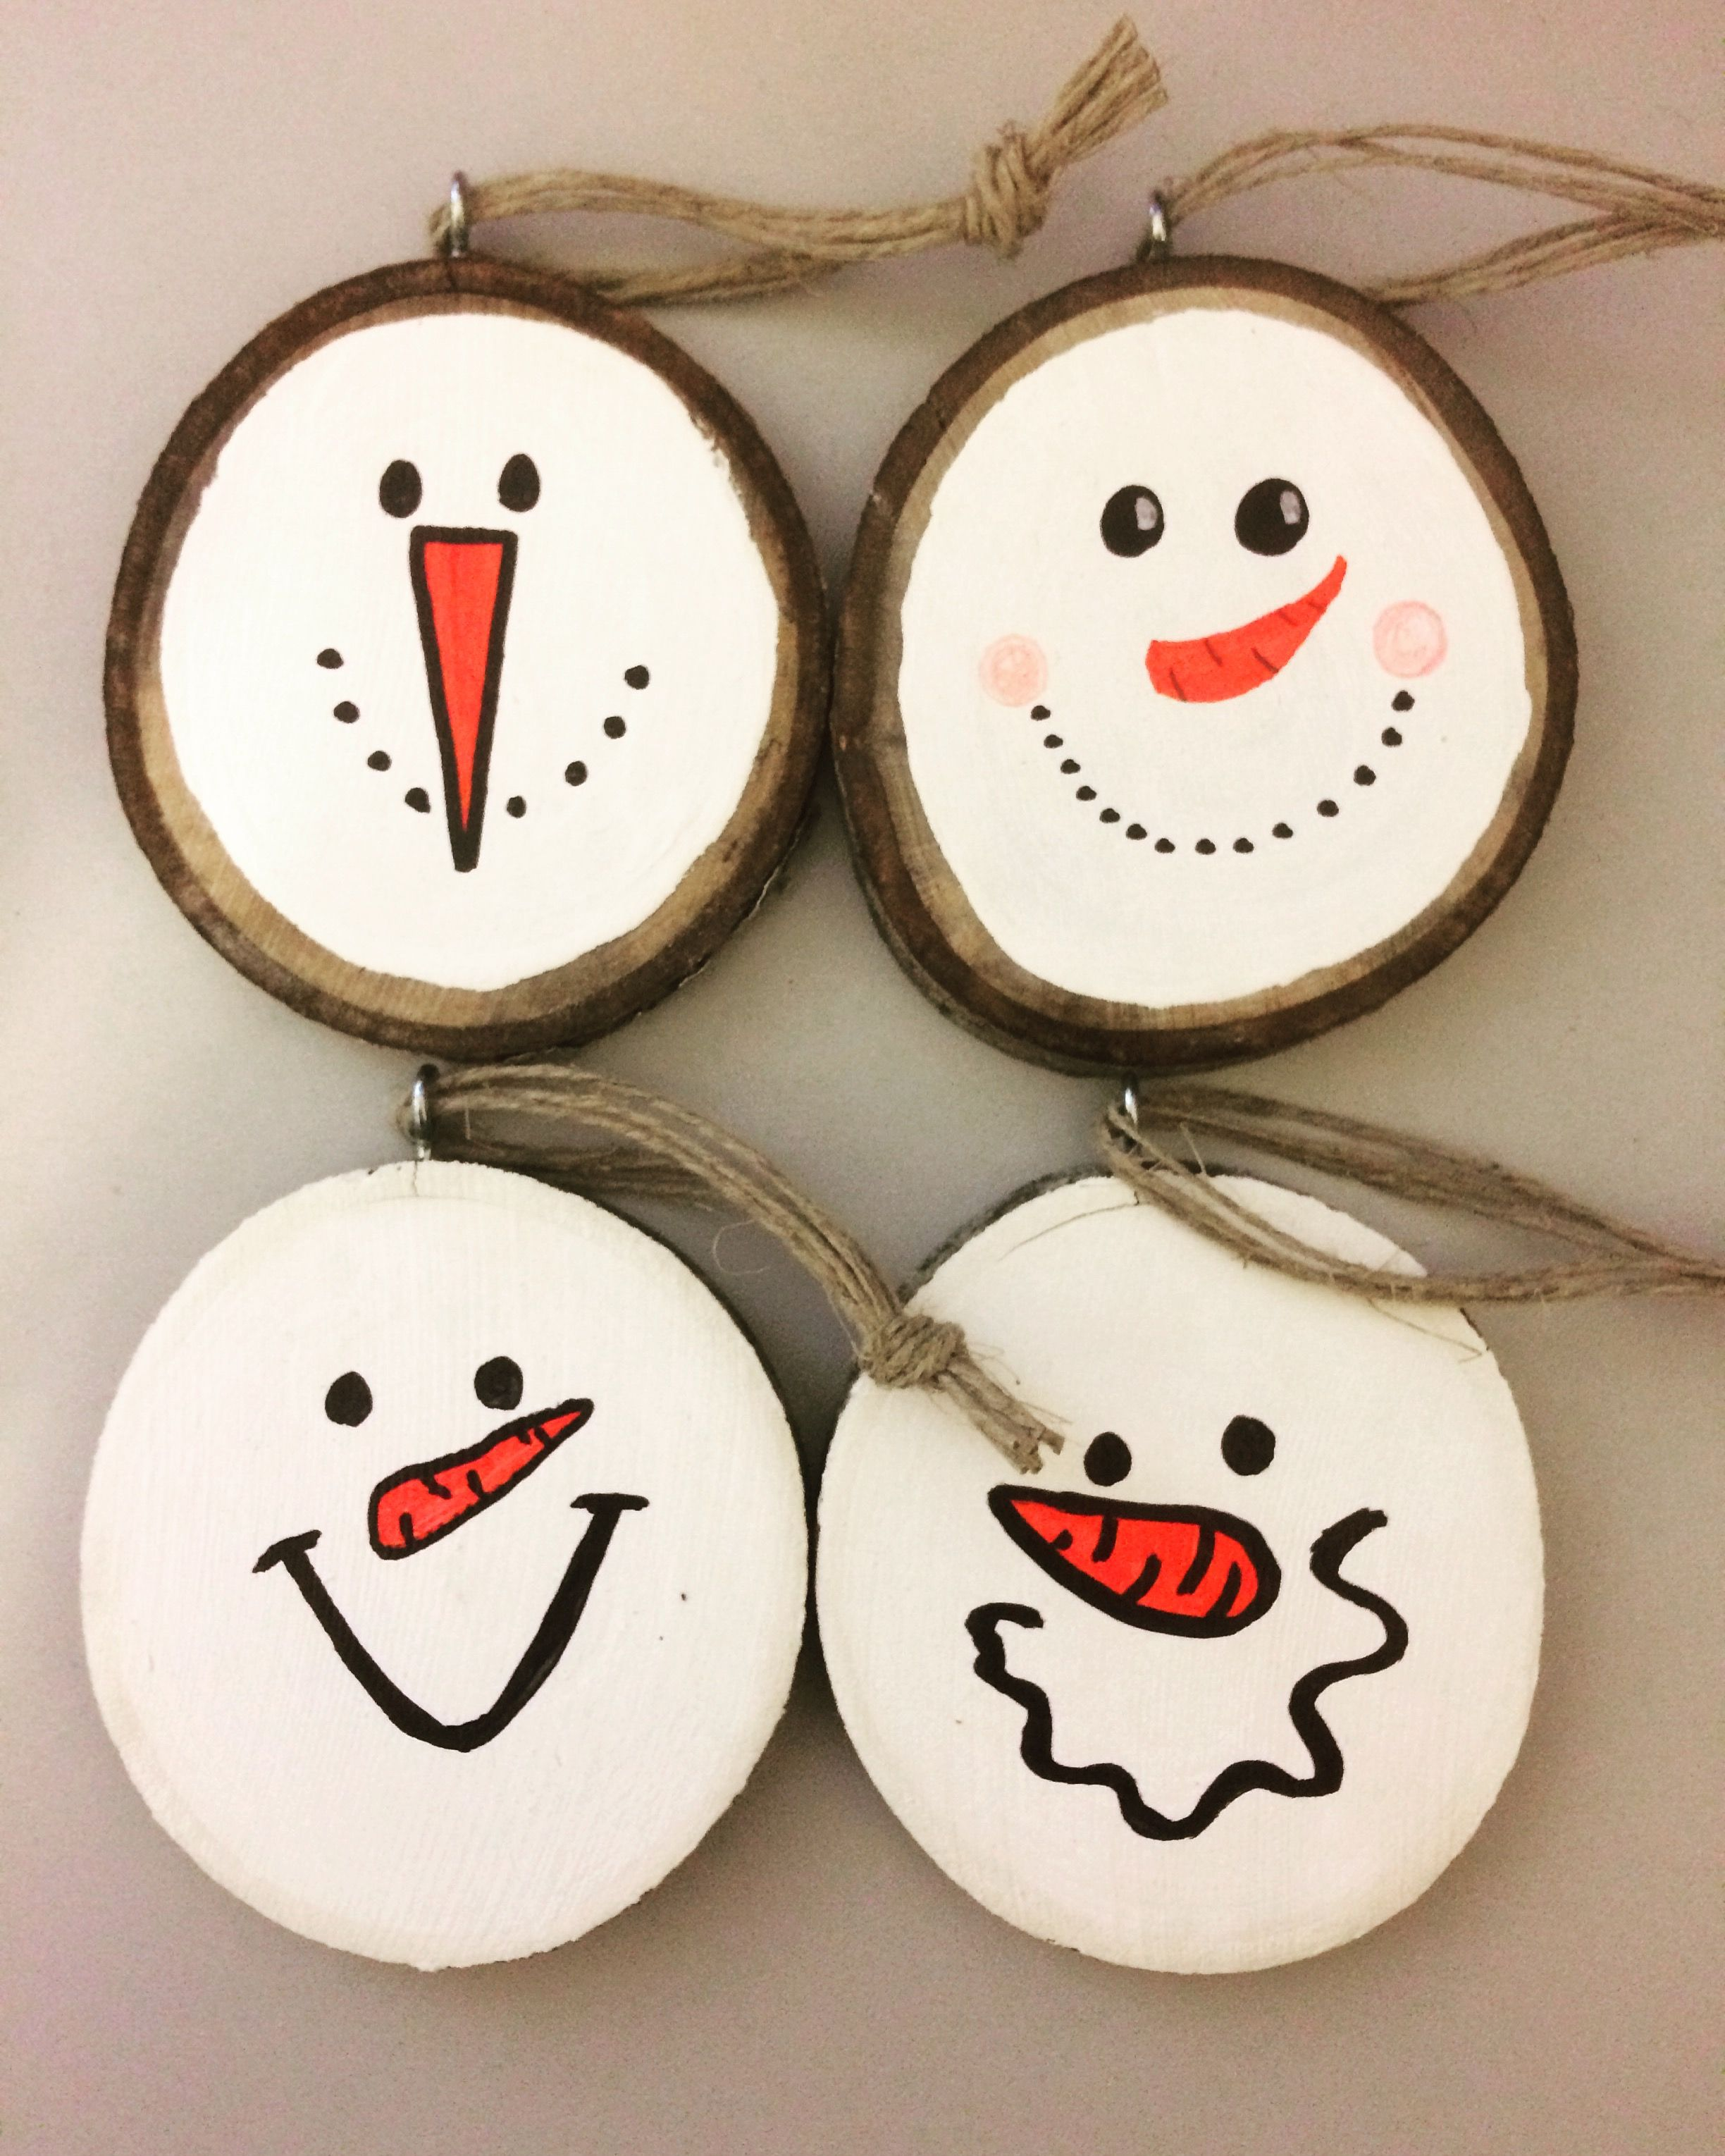 Snowman Snowmen Wood Slices Ornaments Christmas Painting Christmas Crafts Diy Christmas Ornaments Xmas Crafts